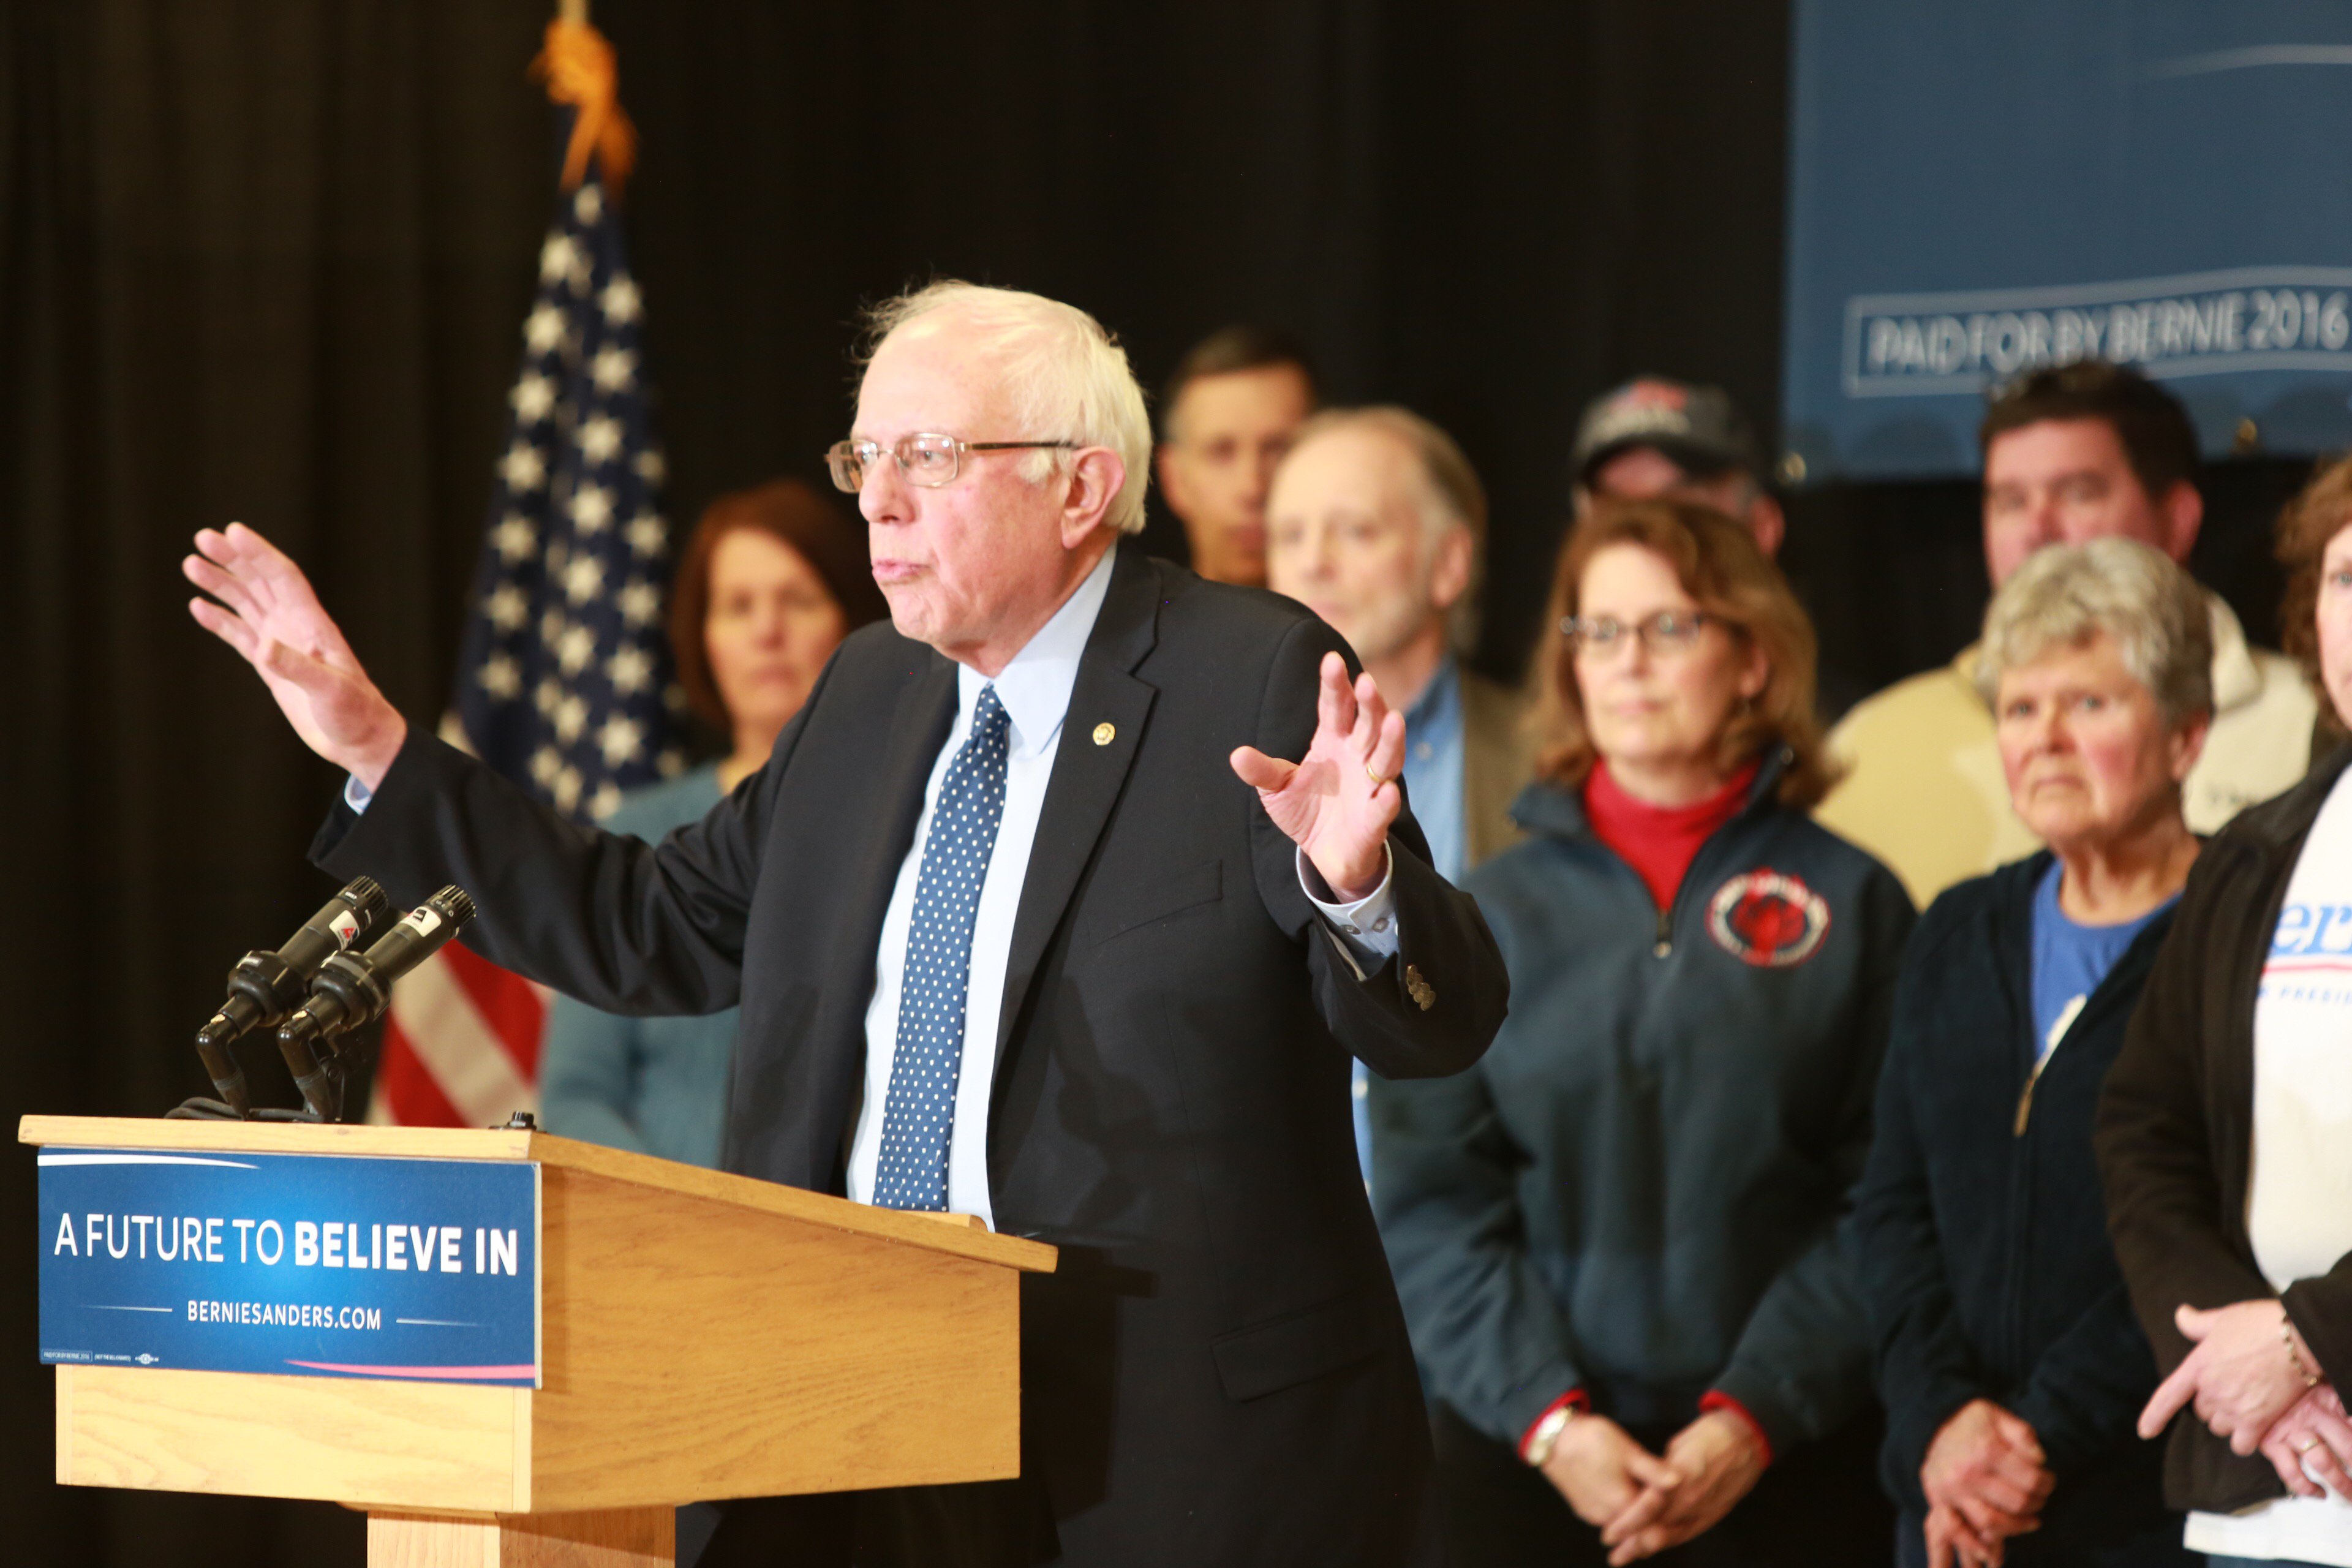 Mark Trahant: Bernie Sanders campaign starts Indian policy group